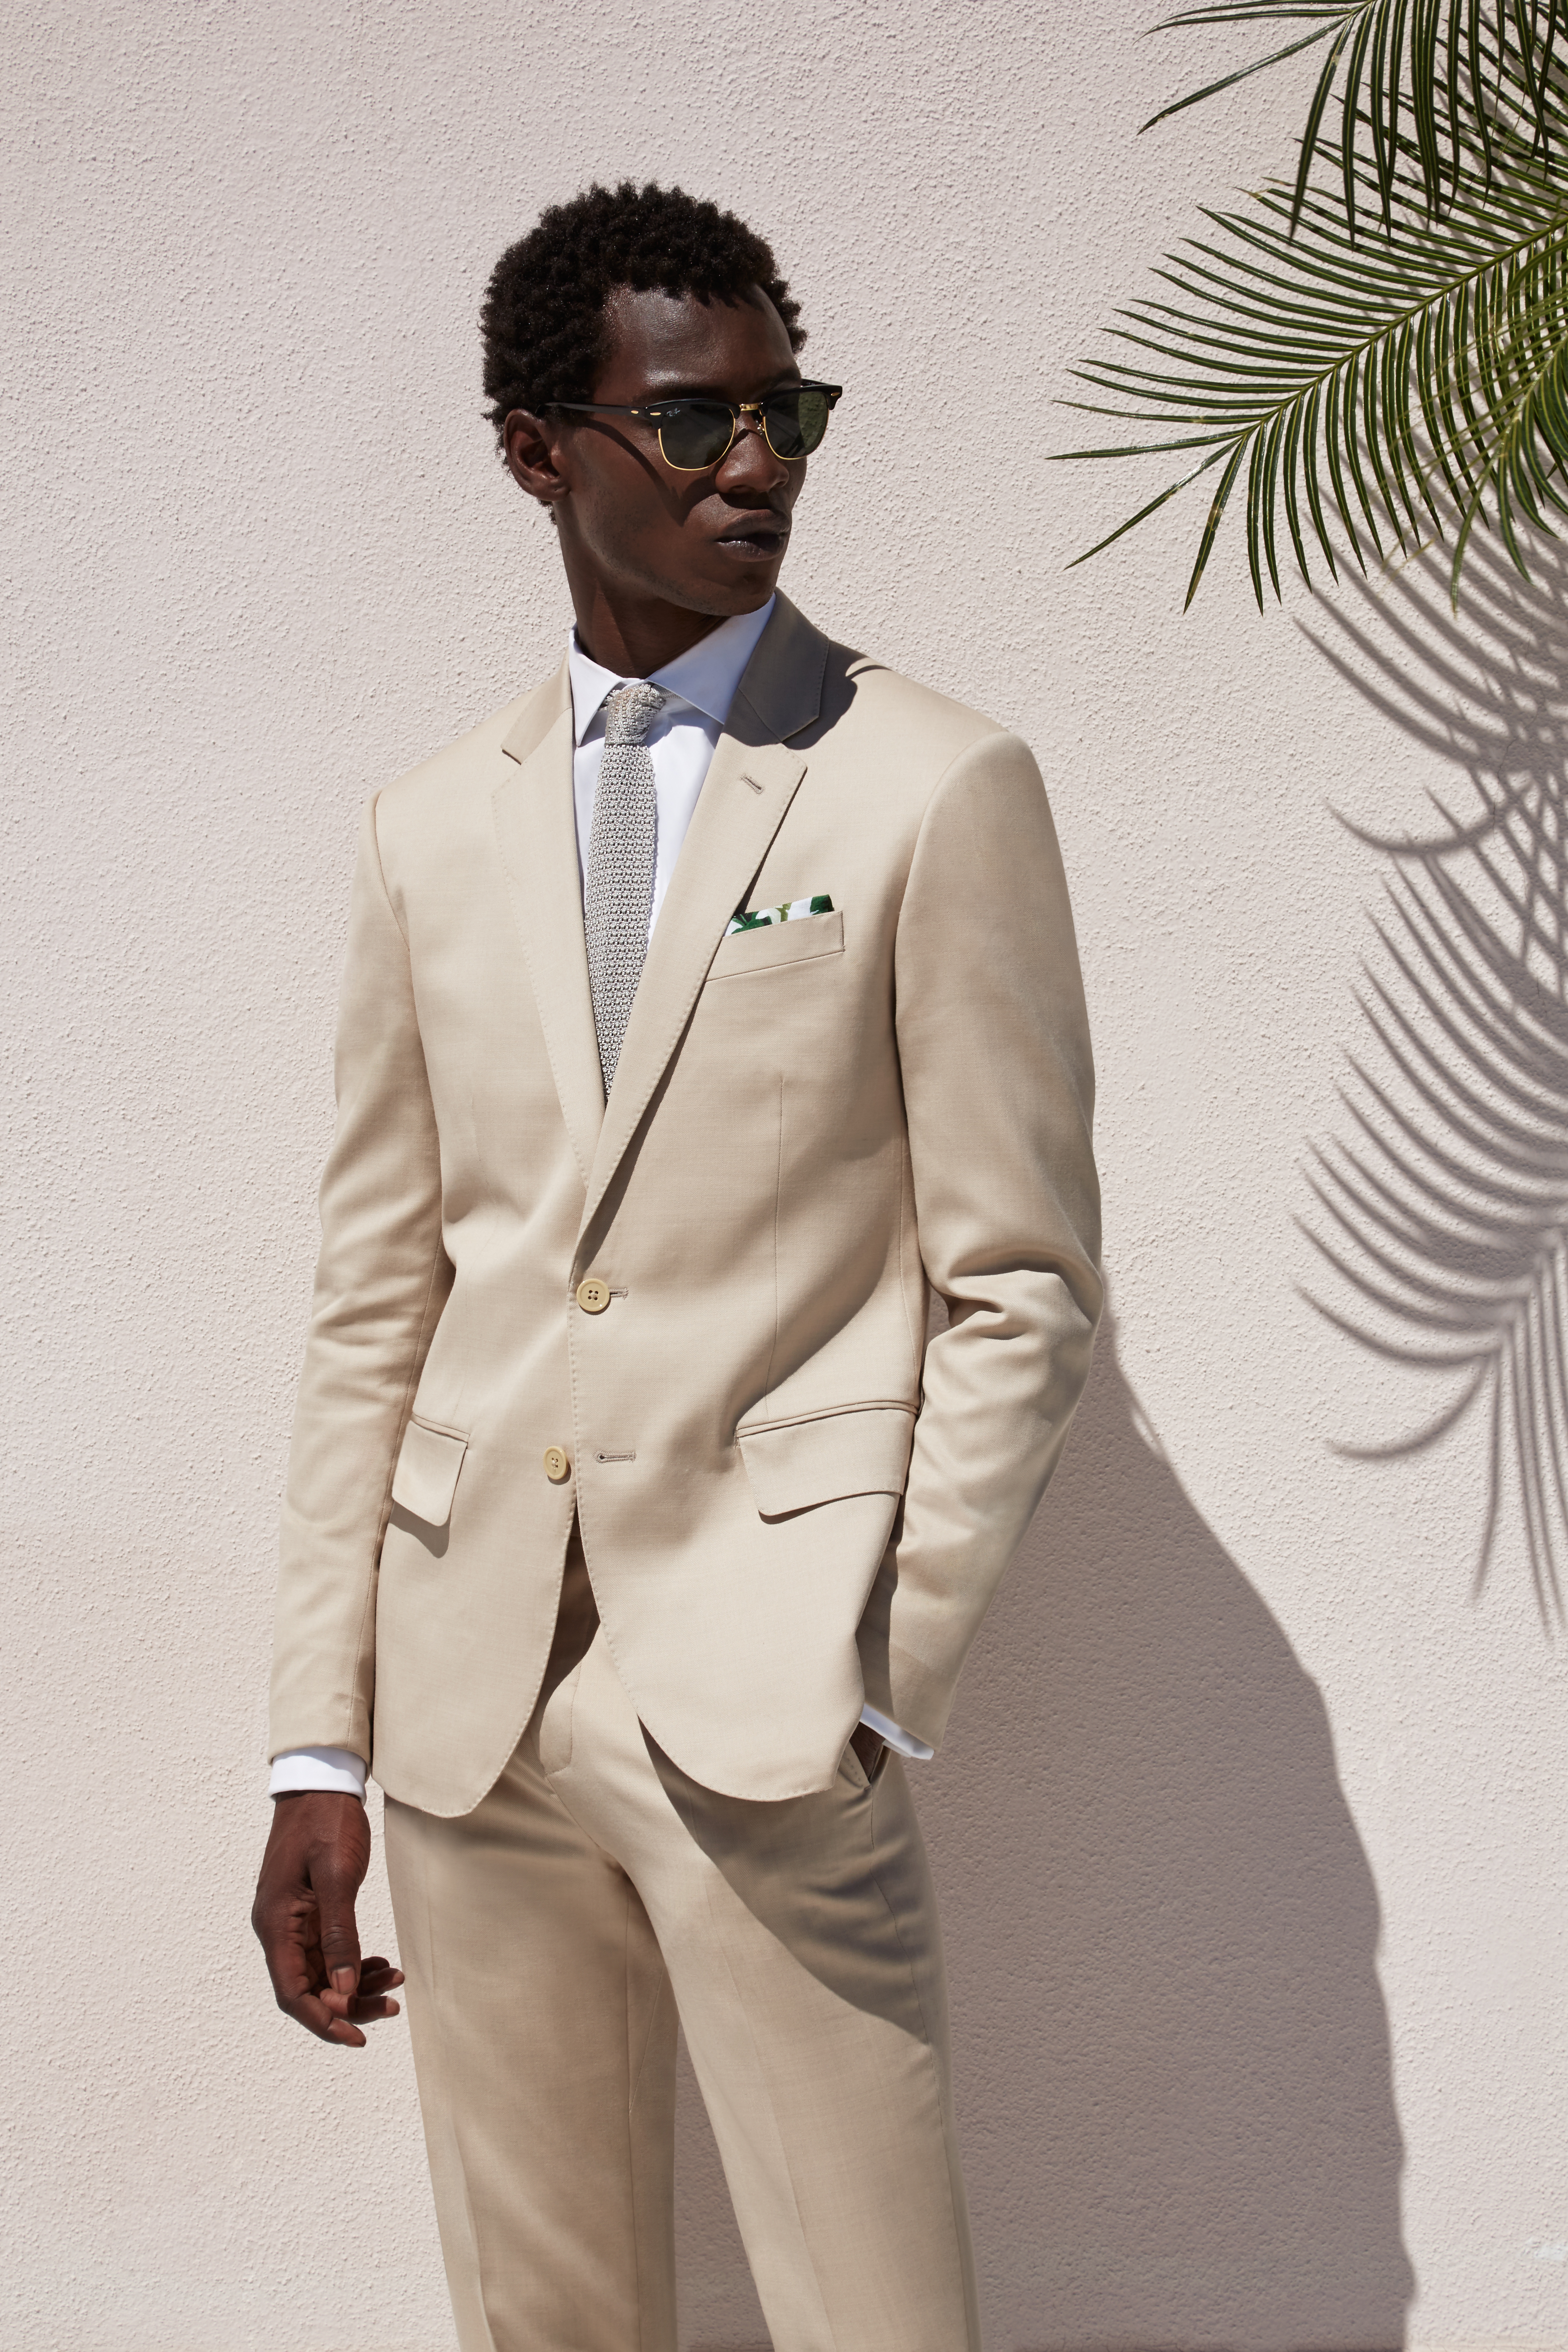 A look from Ovadia & Sons collection for The Black Tux.